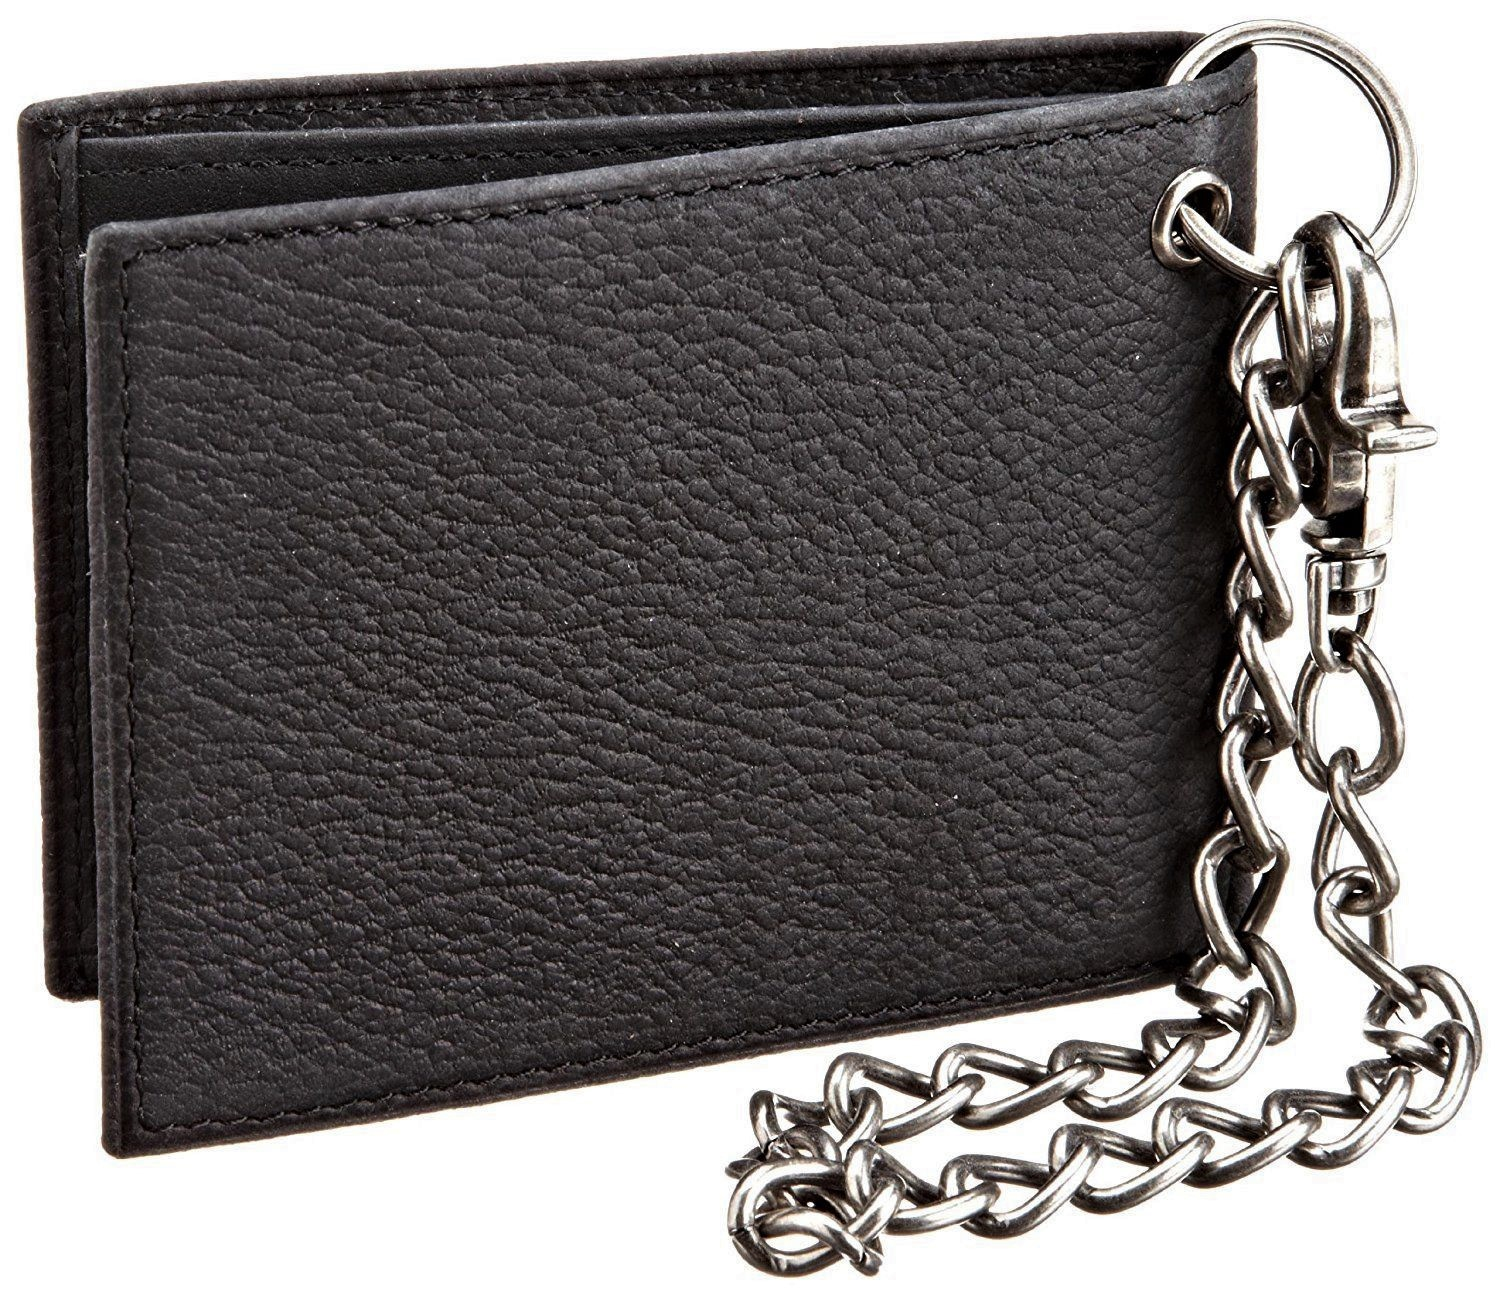 Dickies-Men-039-s-Leather-Slimfold-Wallet-With-Chain thumbnail 5